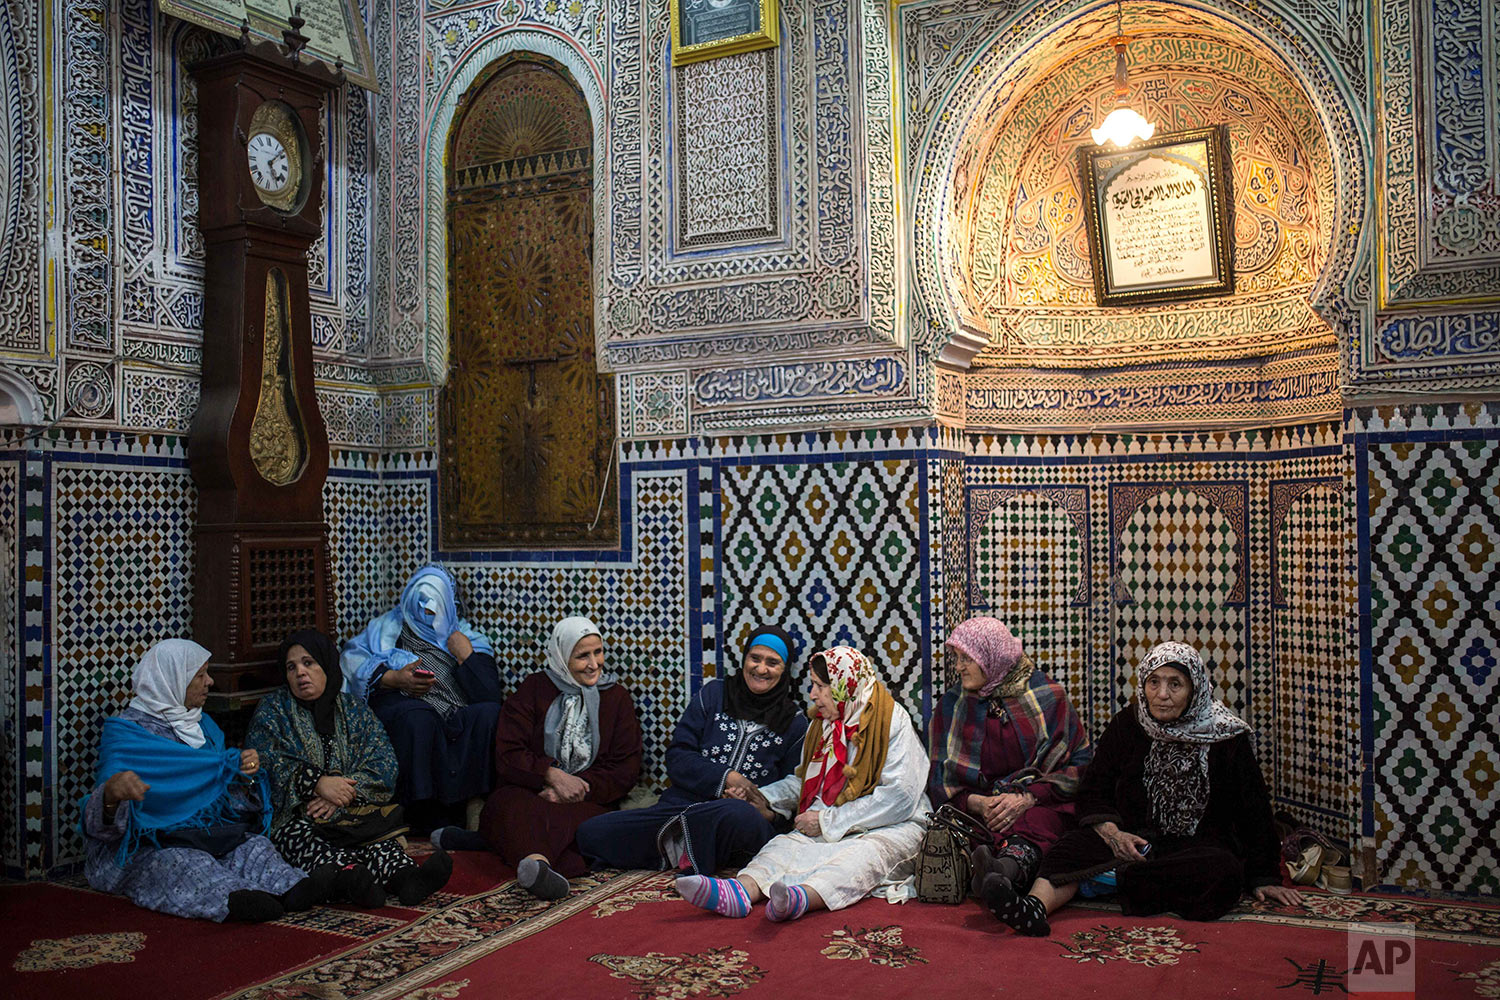 In this Thursday Nov. 30, 2017 photo, women gather at a Sufi shrine as they celebrate the birth anniversary of Prophet Muhammad, in Sale, near Rabat, Morocco. A large parade with historic roots takes place in the Moroccan city of Sale each year to mark the birth of Prophet Muhammad, an occasion Muslims around the world observe as Mawlid an-Nabi. (AP Photo/Mosa'ab Elshamy)